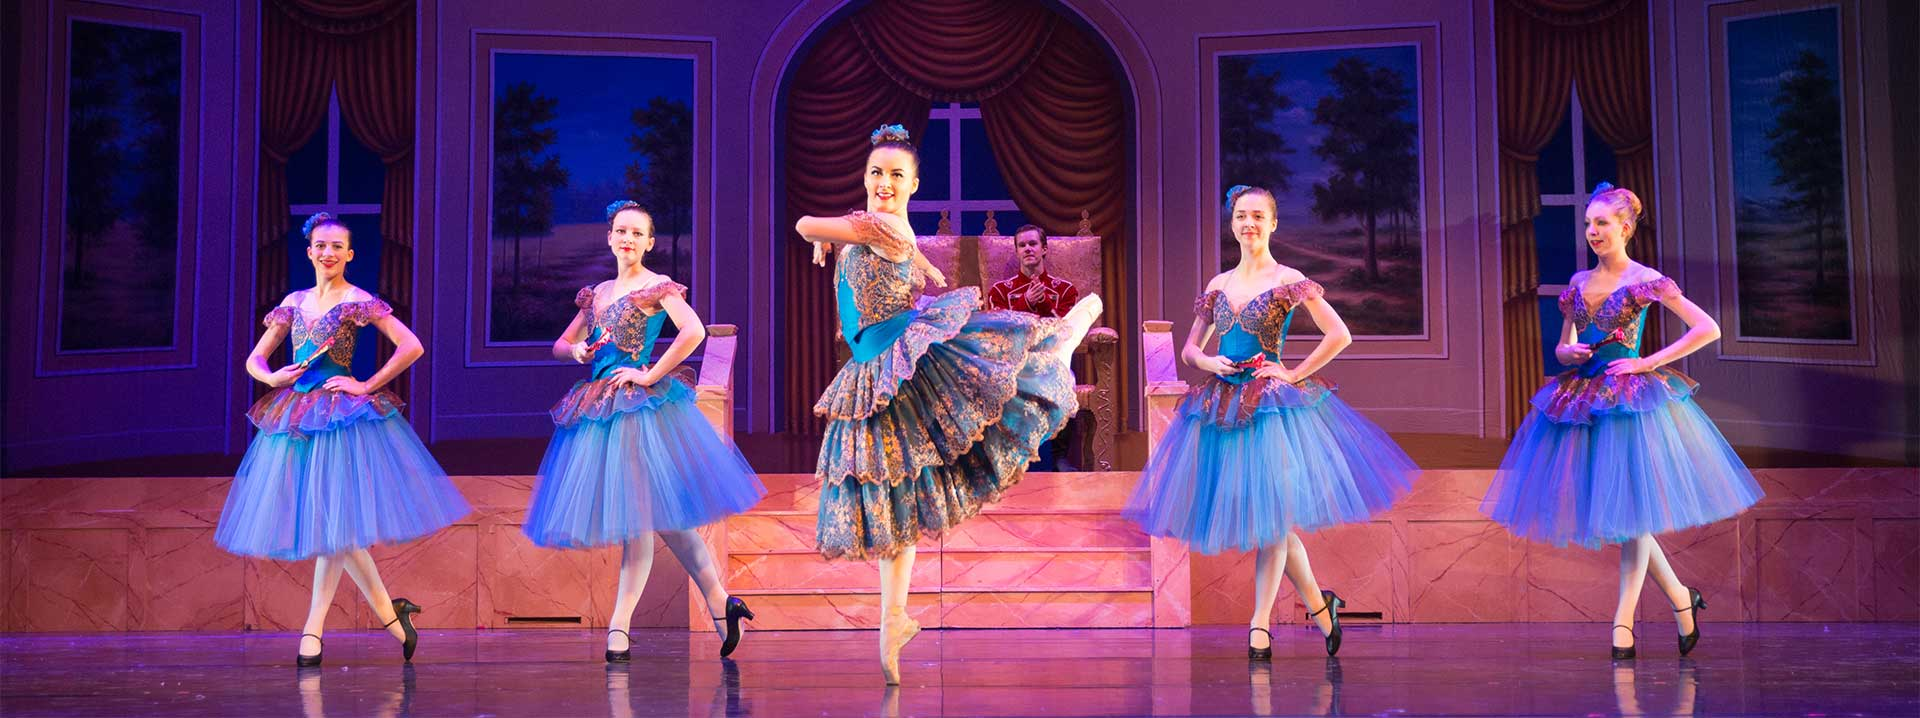 The Nutcracker Garden City Ballet FAQs - dancers on stage